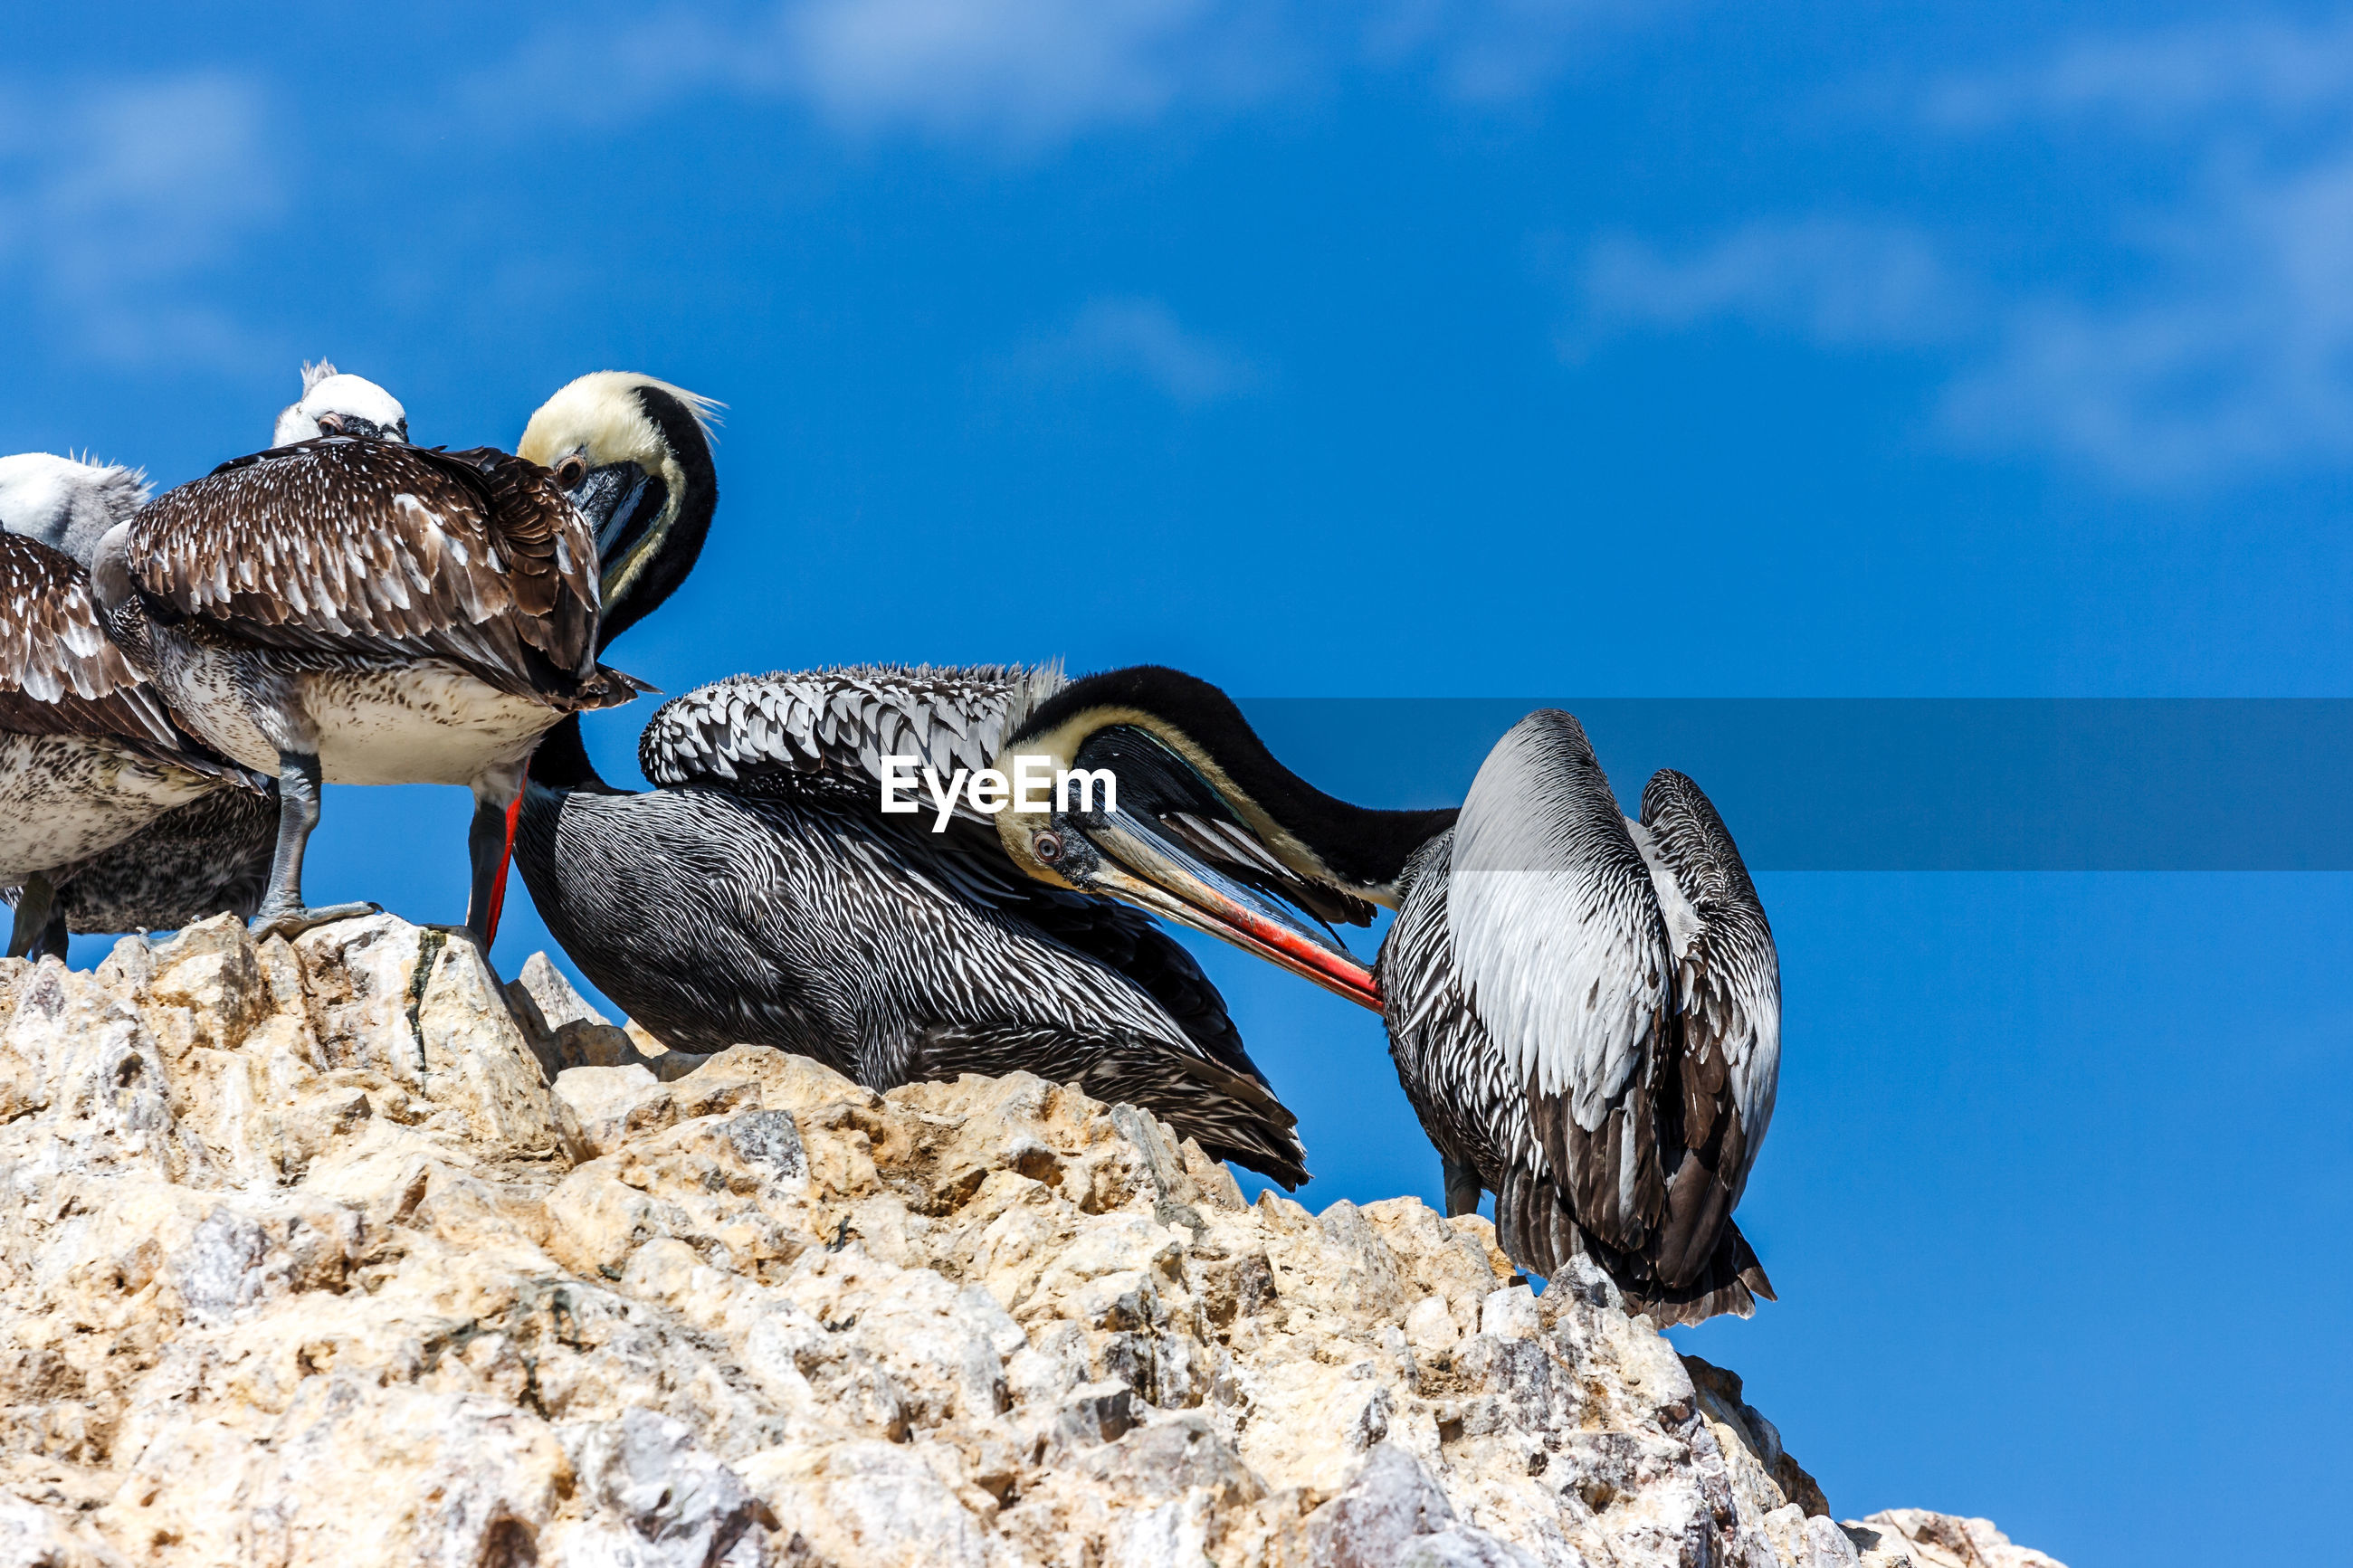 Low angle view of pelicans perching on rock against blue sky